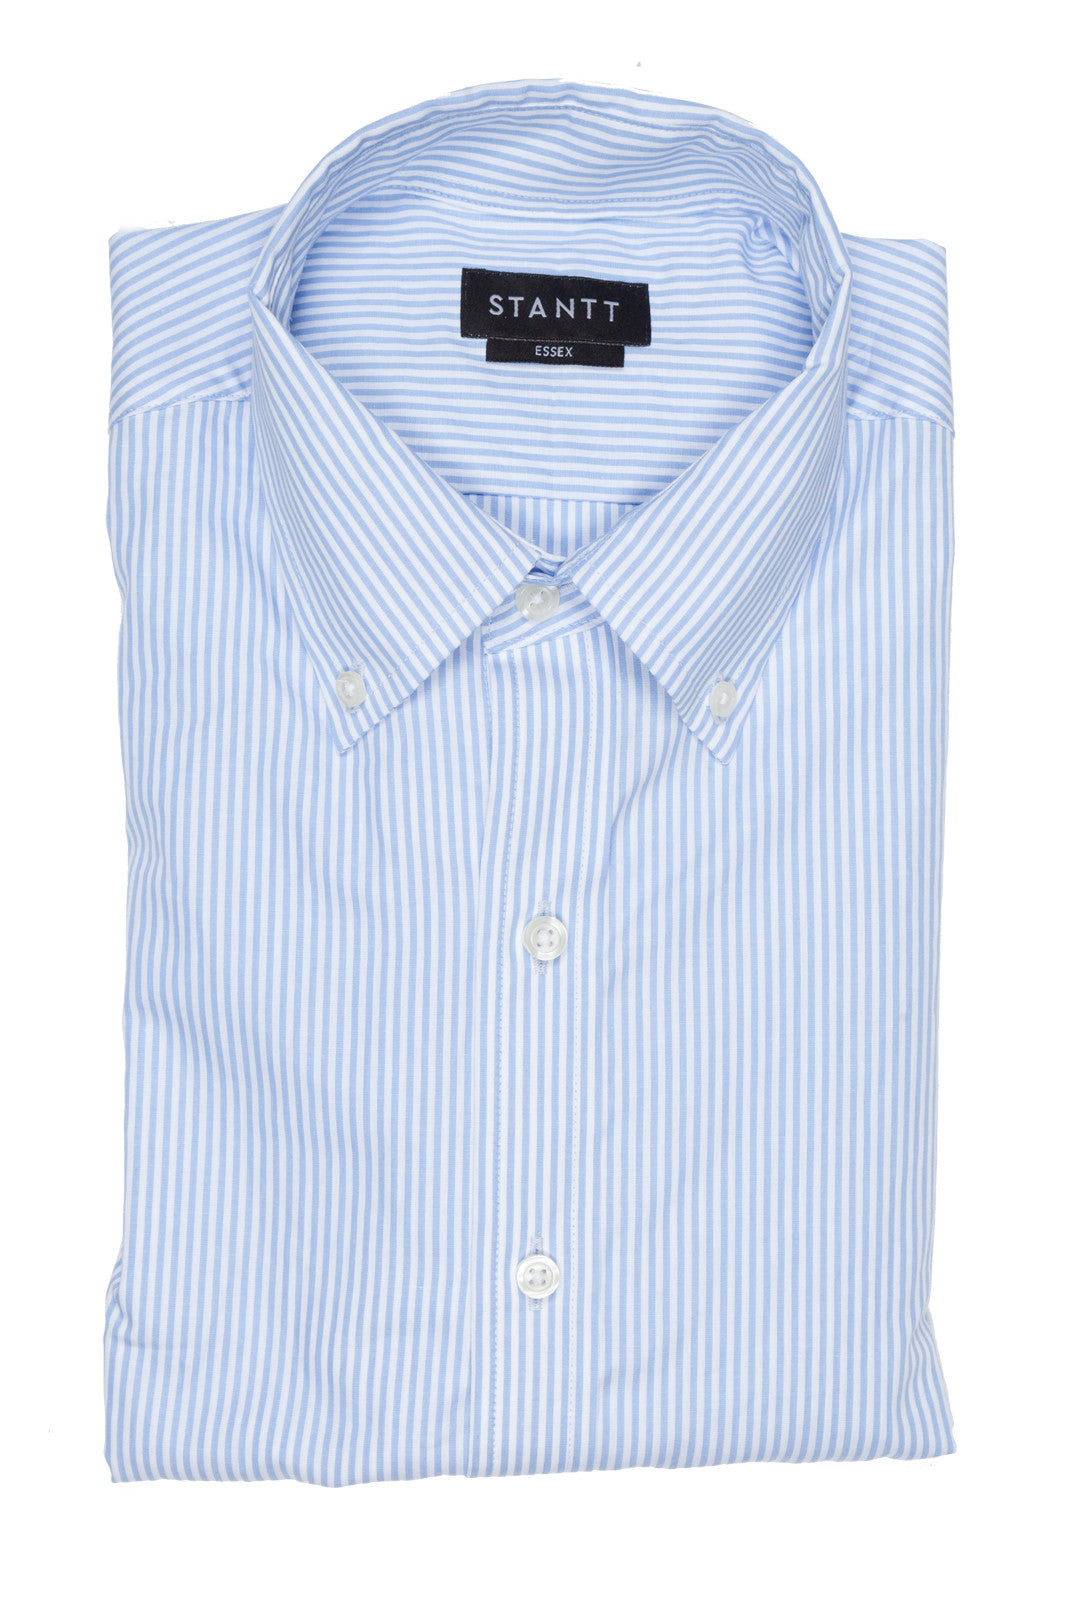 Light Blue University Stripe: Semi-Spread Collar, French Cuff